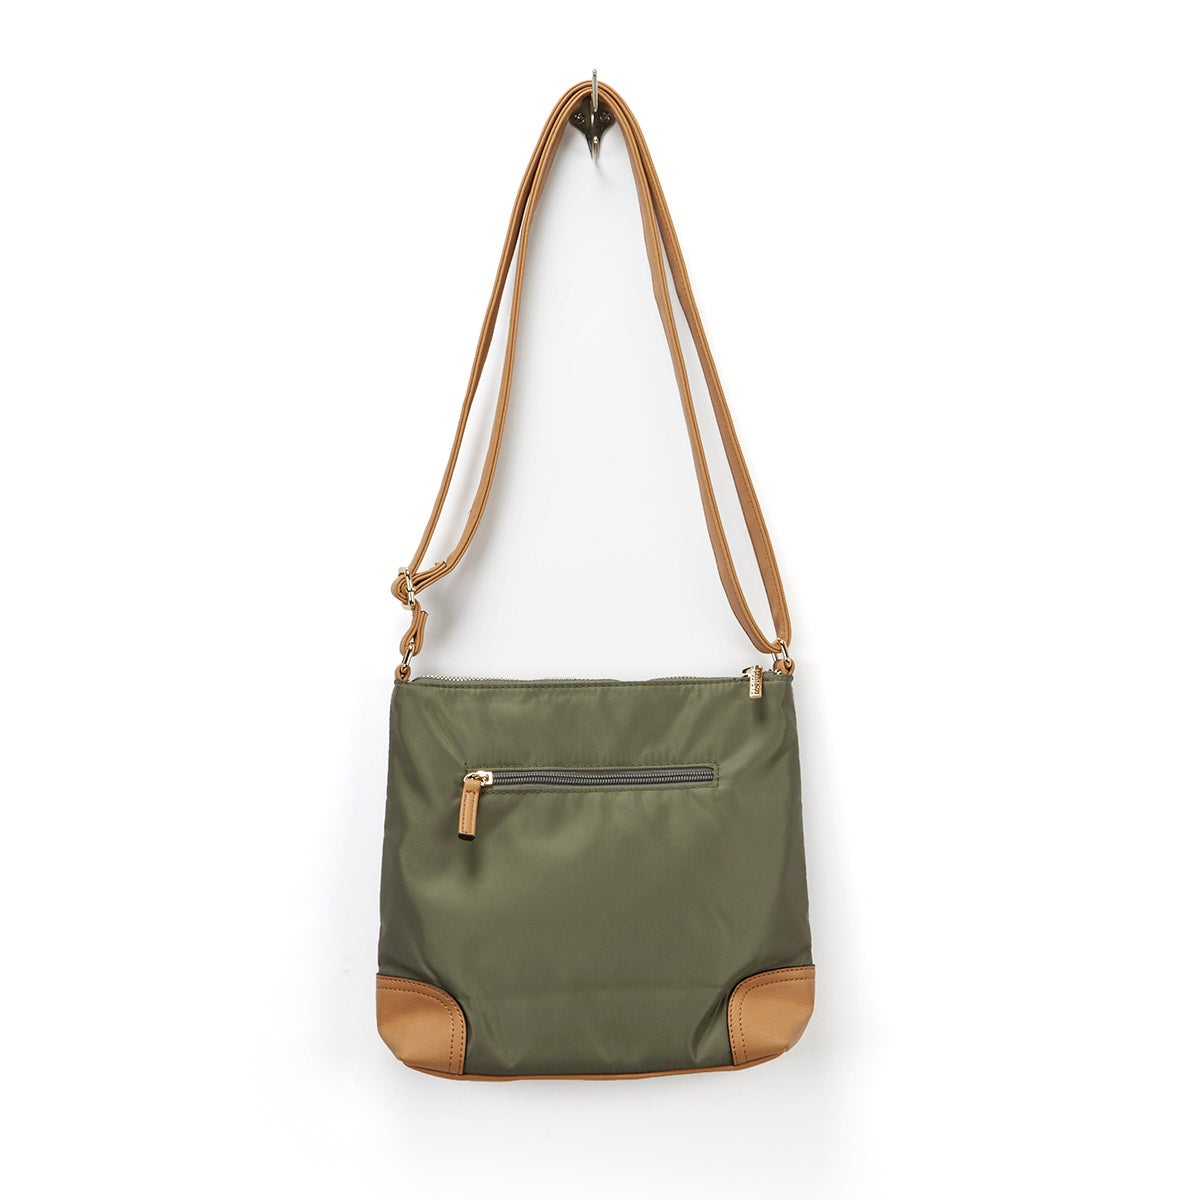 Lds khaki/cml north south crossbody bag